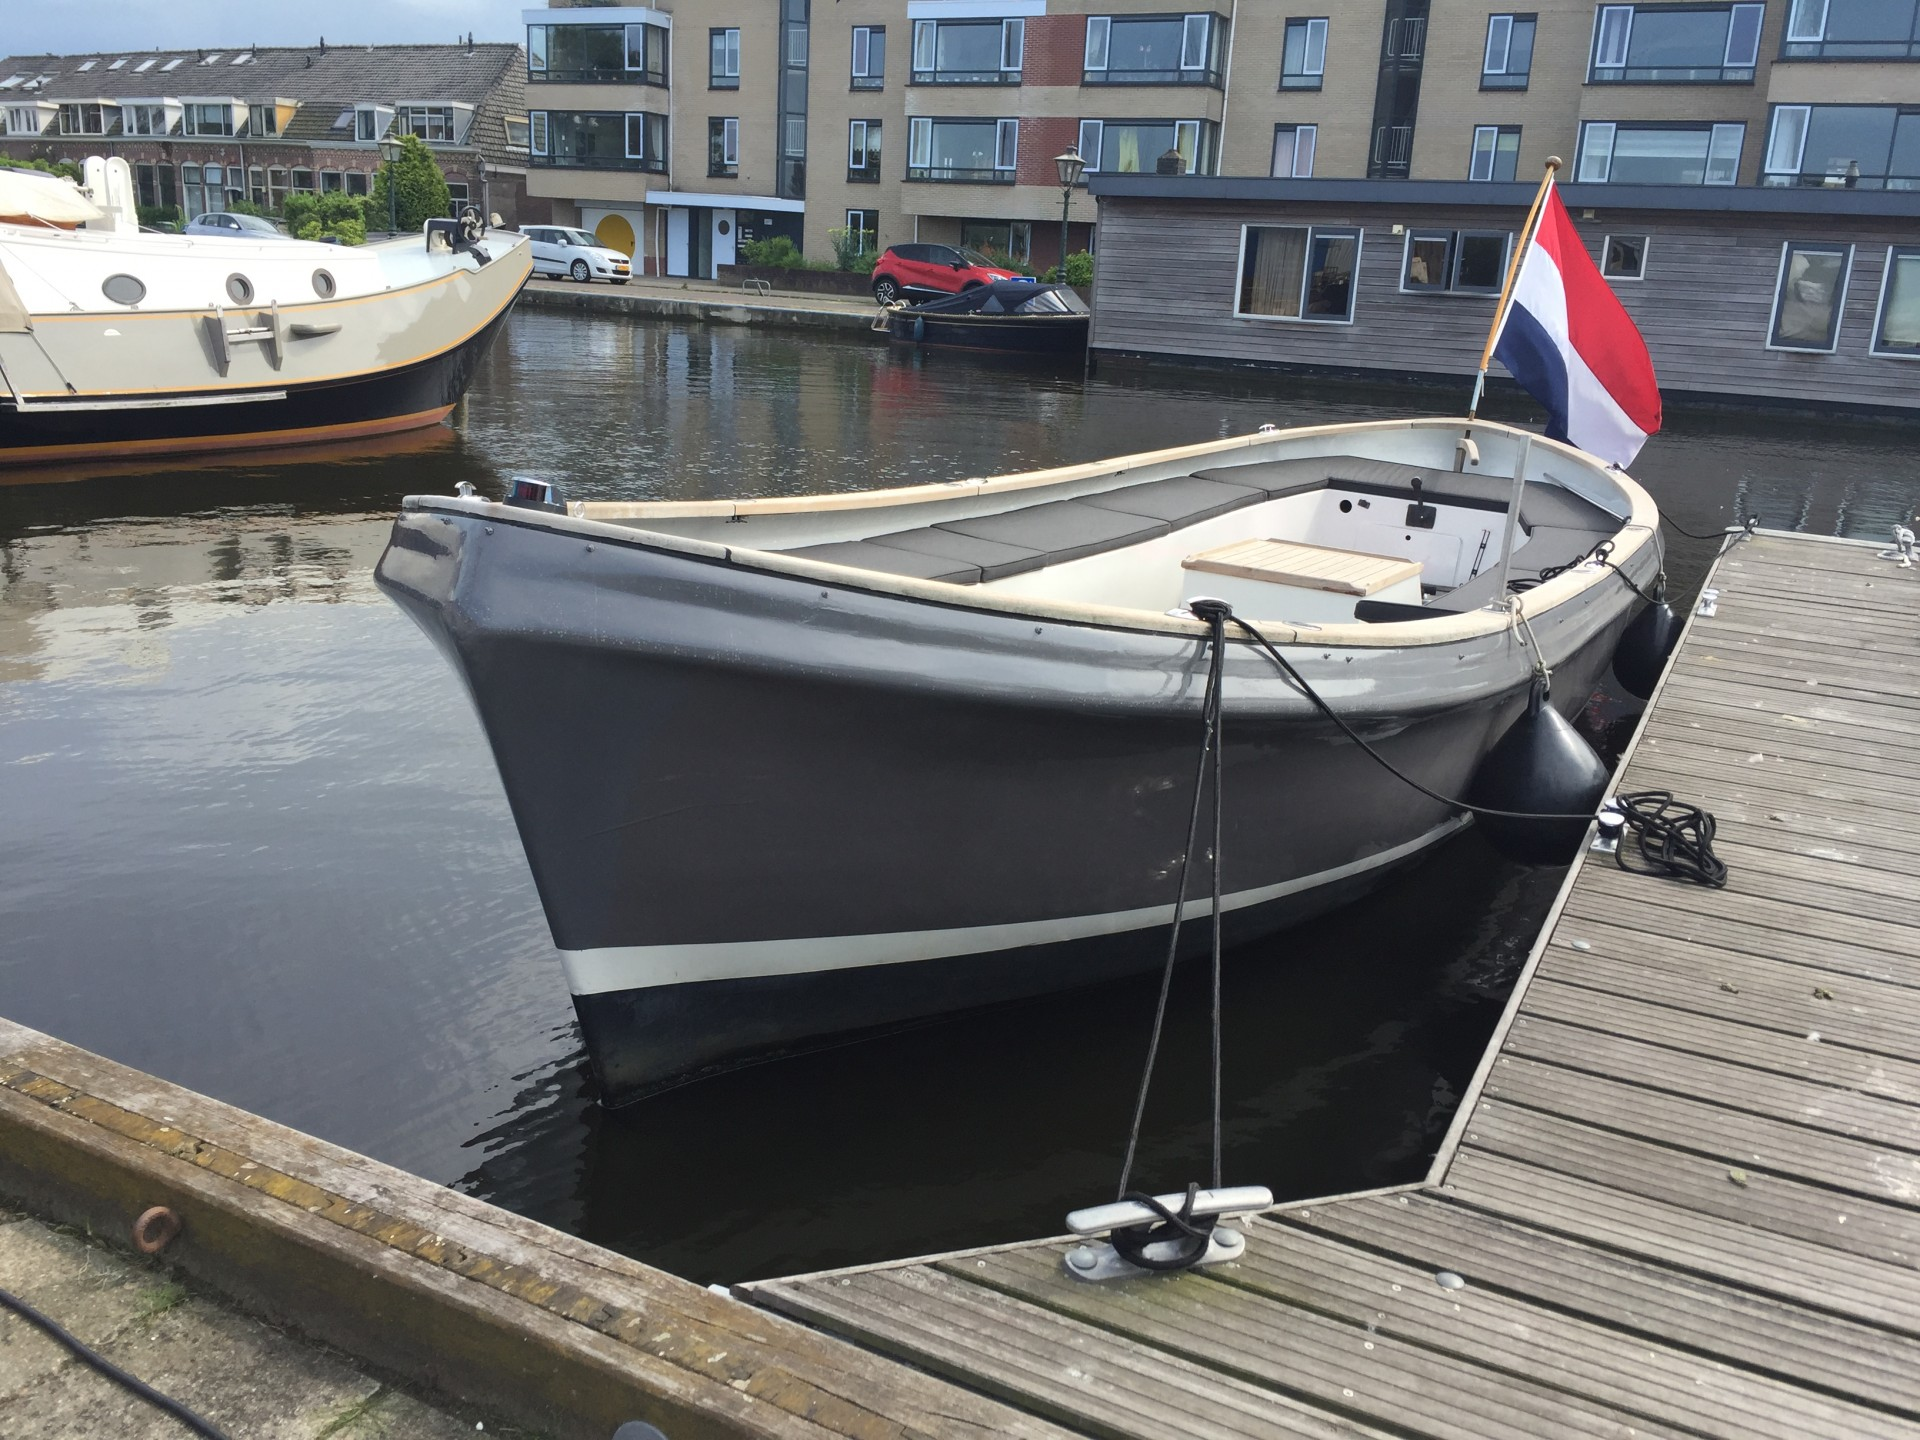 Met jouw groep in een sloep! Have a group and rent a sloop!